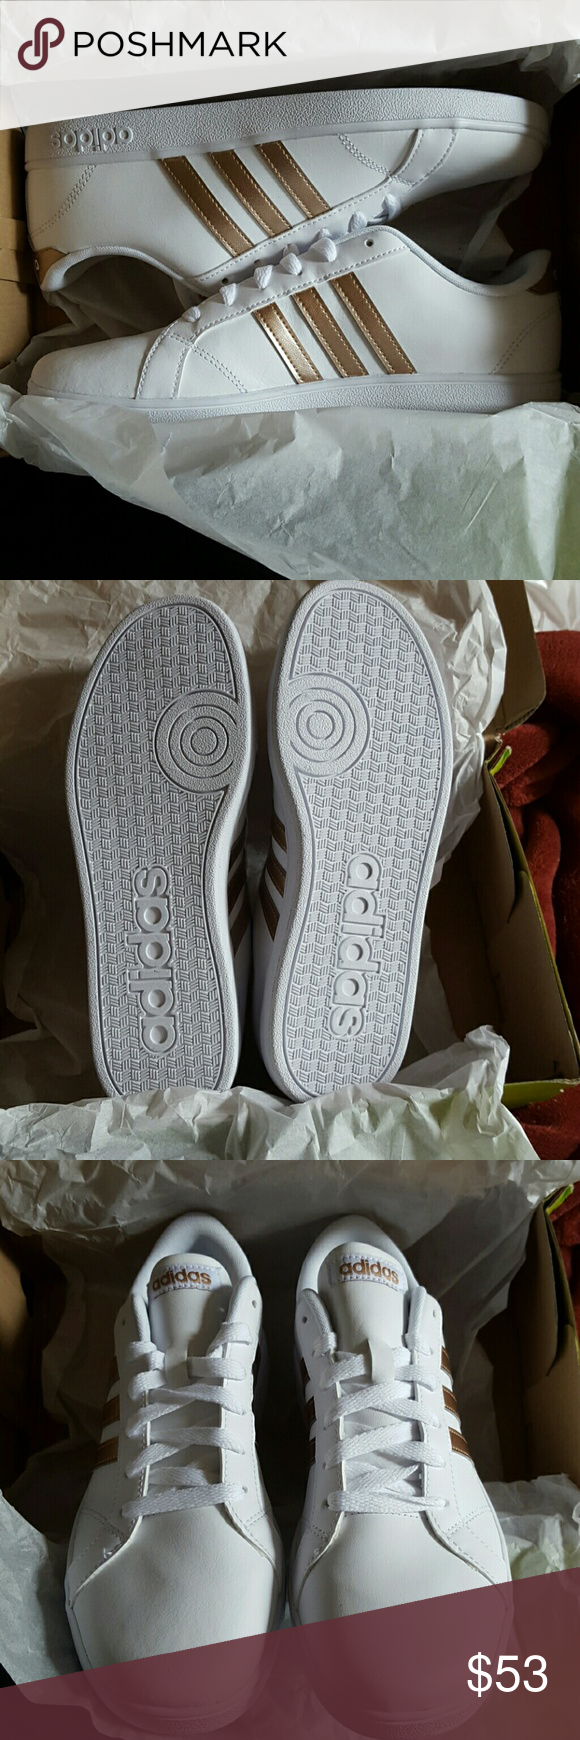 Brand new Adidas neo baseline white wrose gold These are